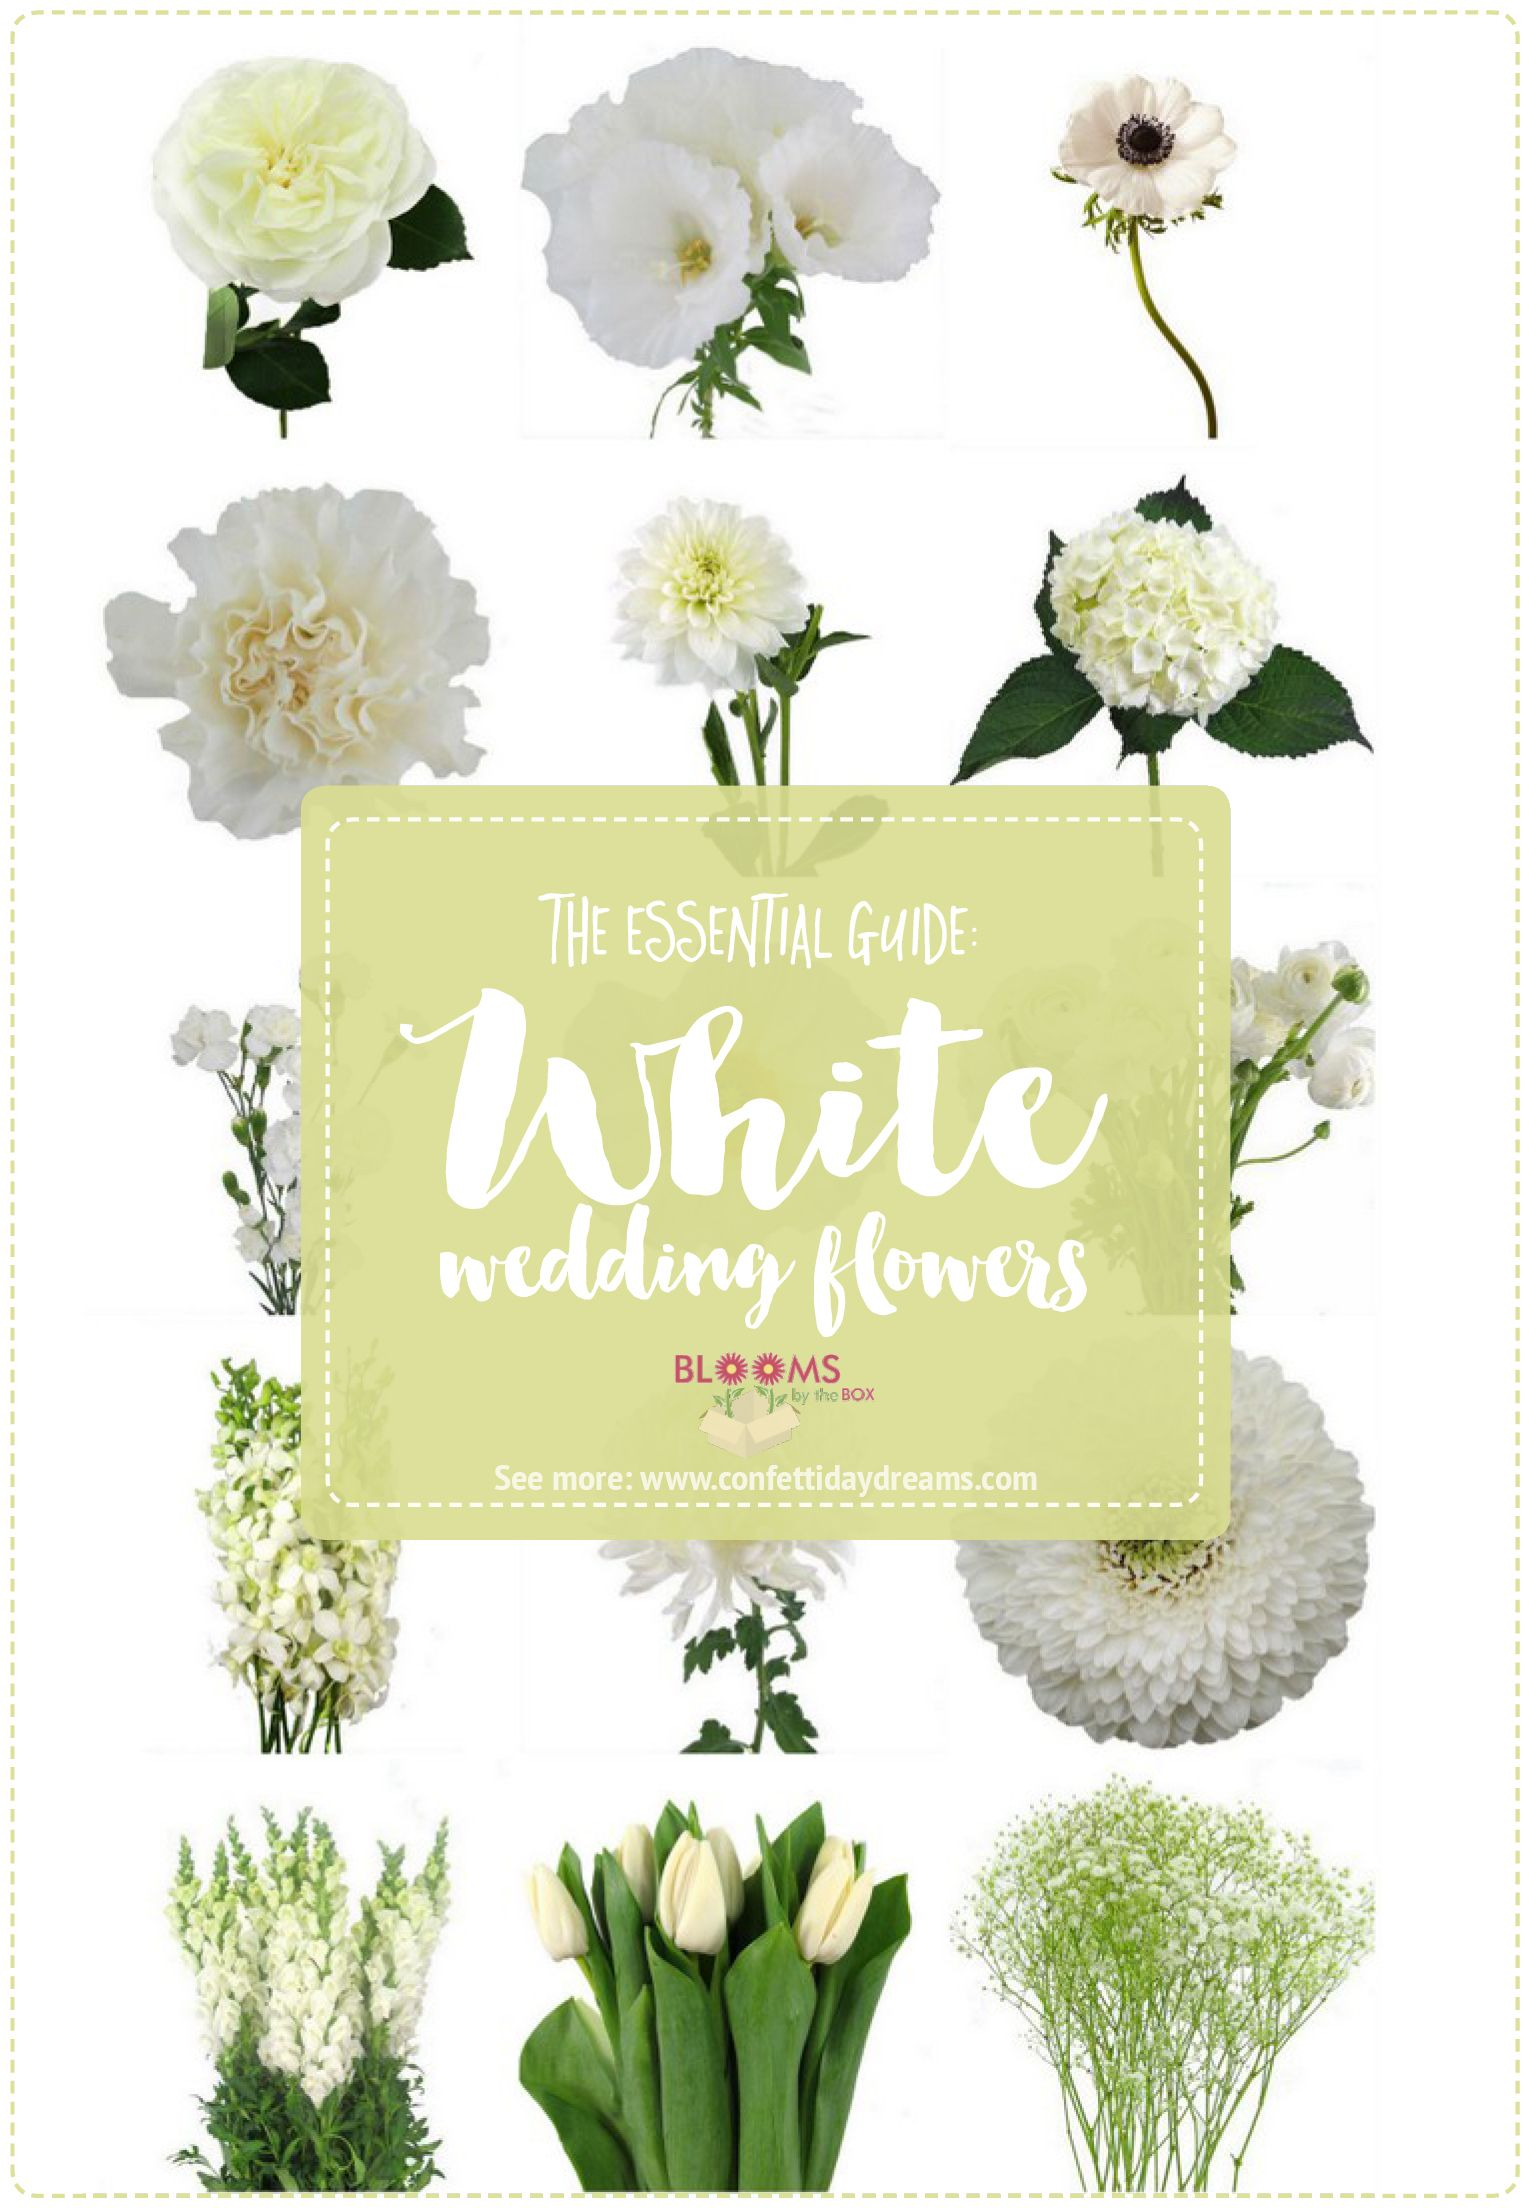 Essential white wedding flower guide names types pics white wedding flowers confetti day dreams blooms by the box mightylinksfo